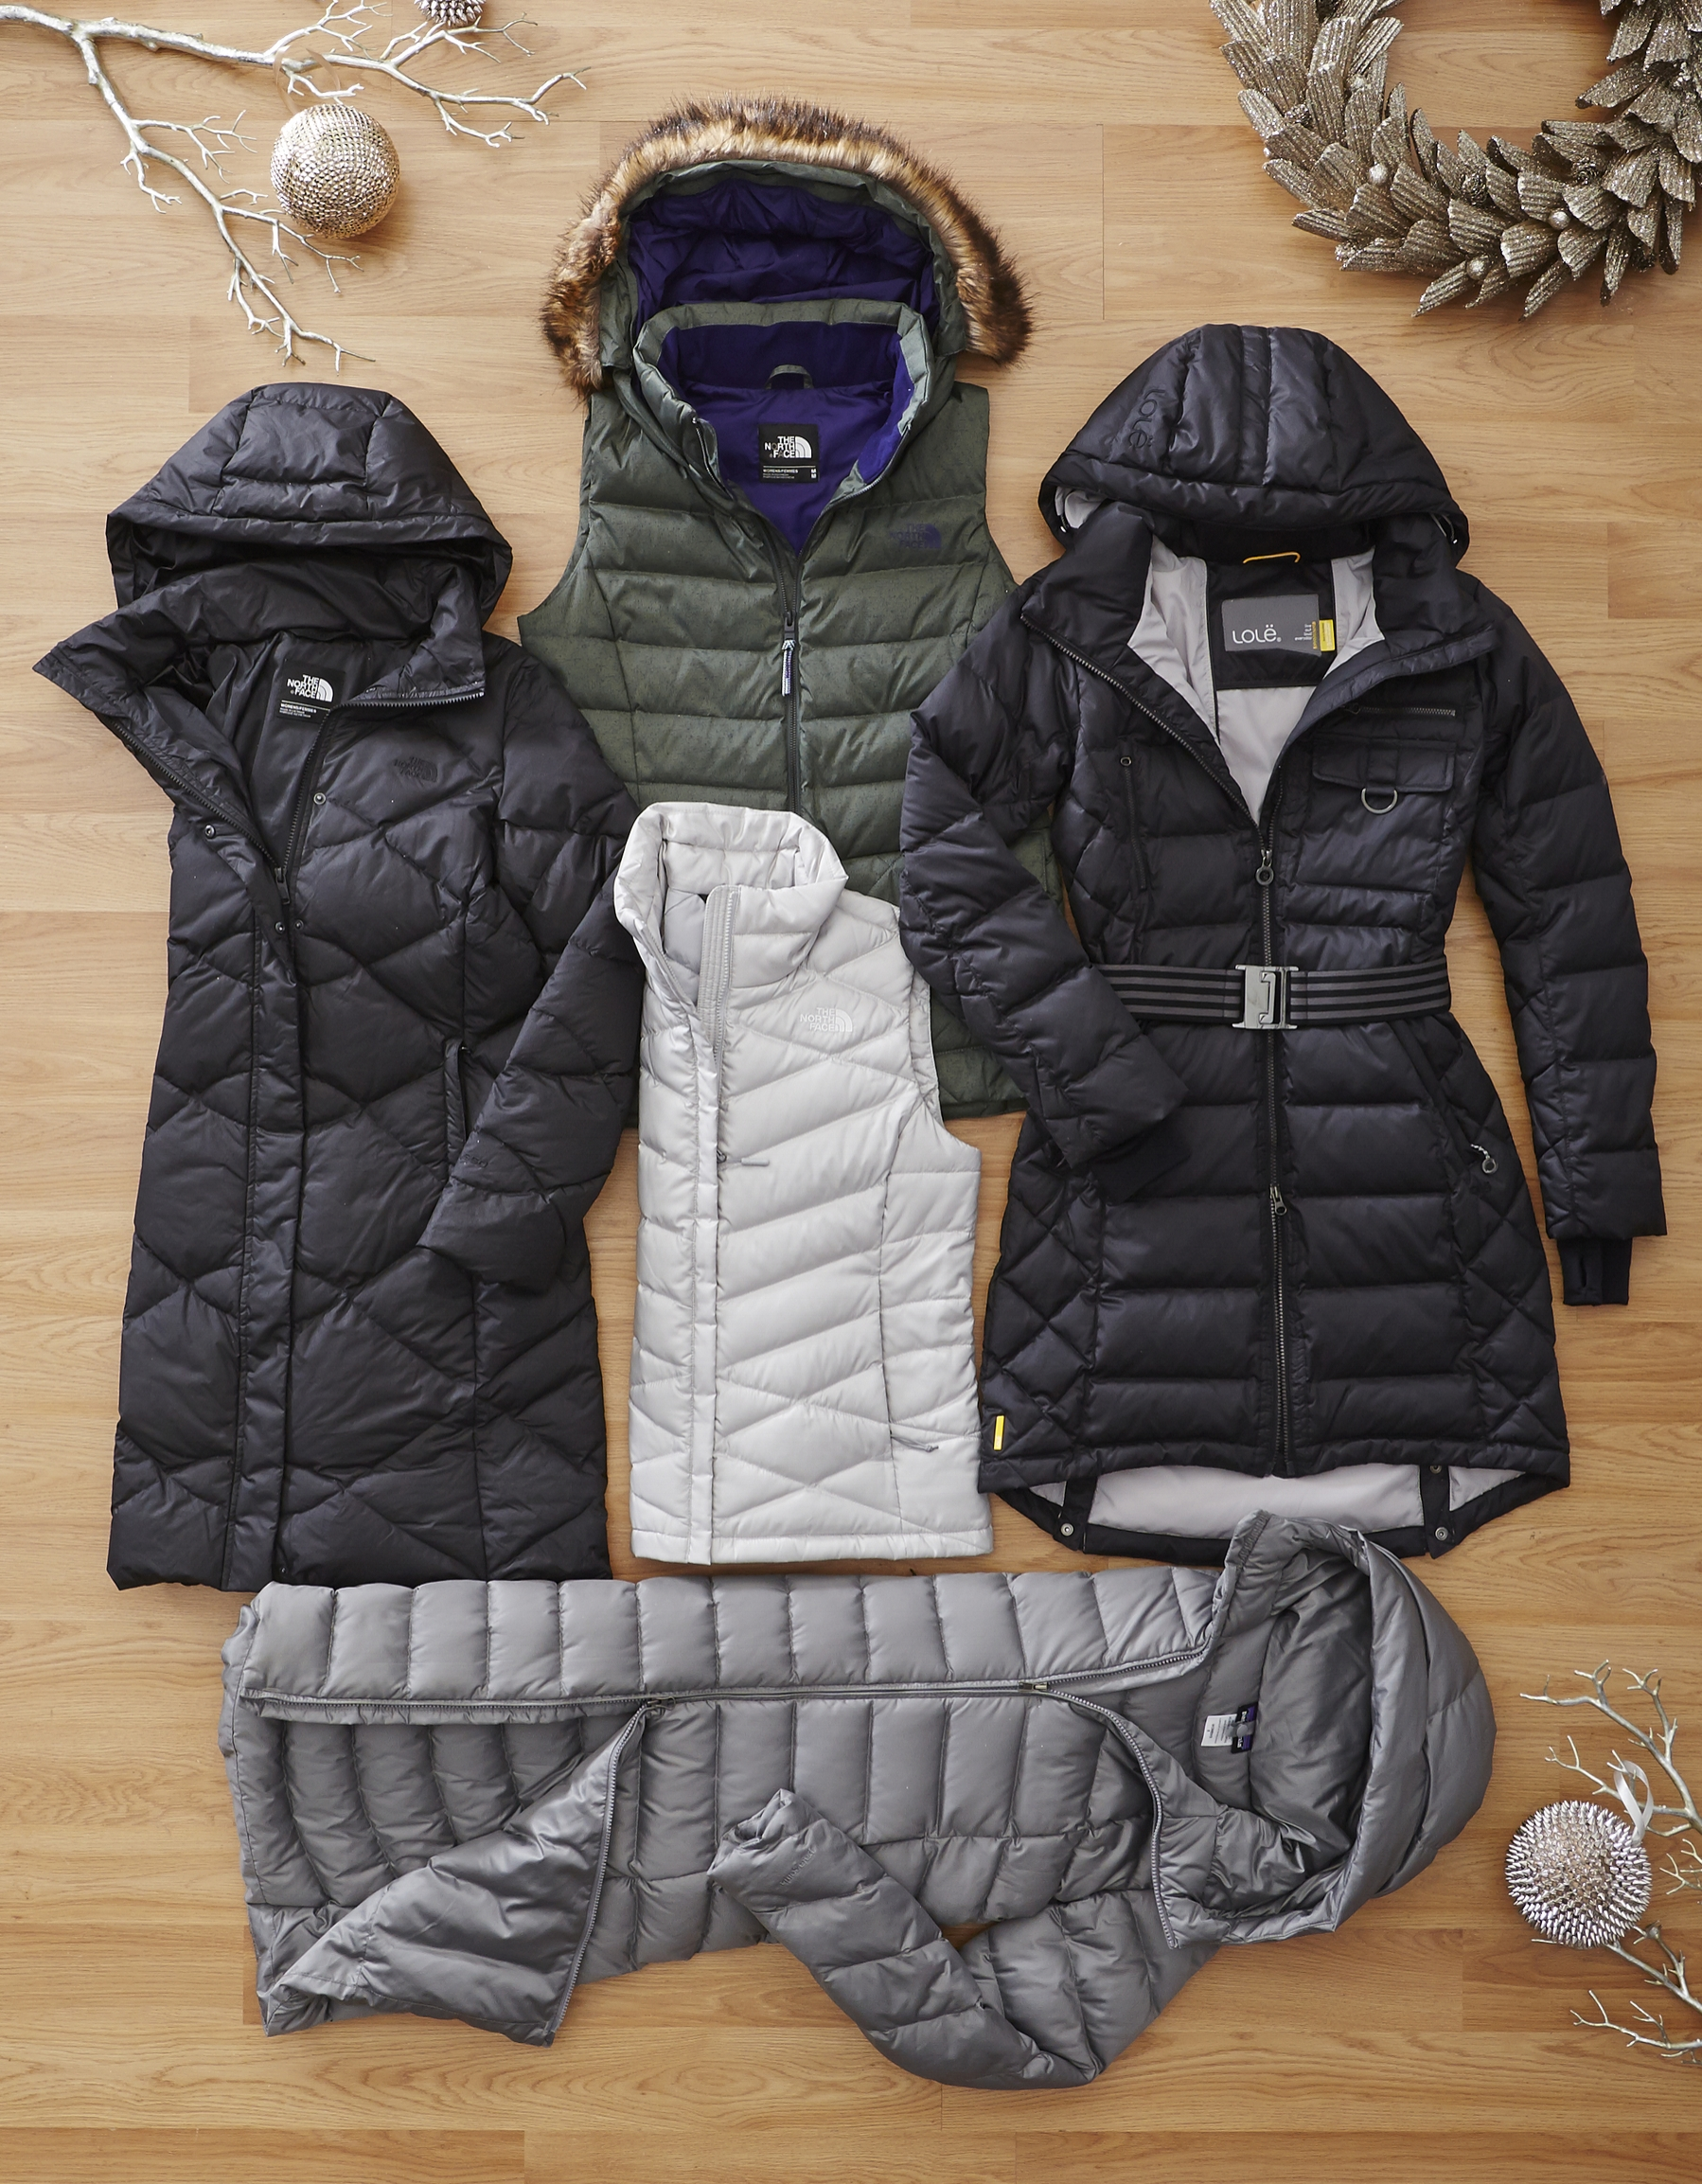 F_MIX_OUTERWEAR_15CCHOL-3.jpg